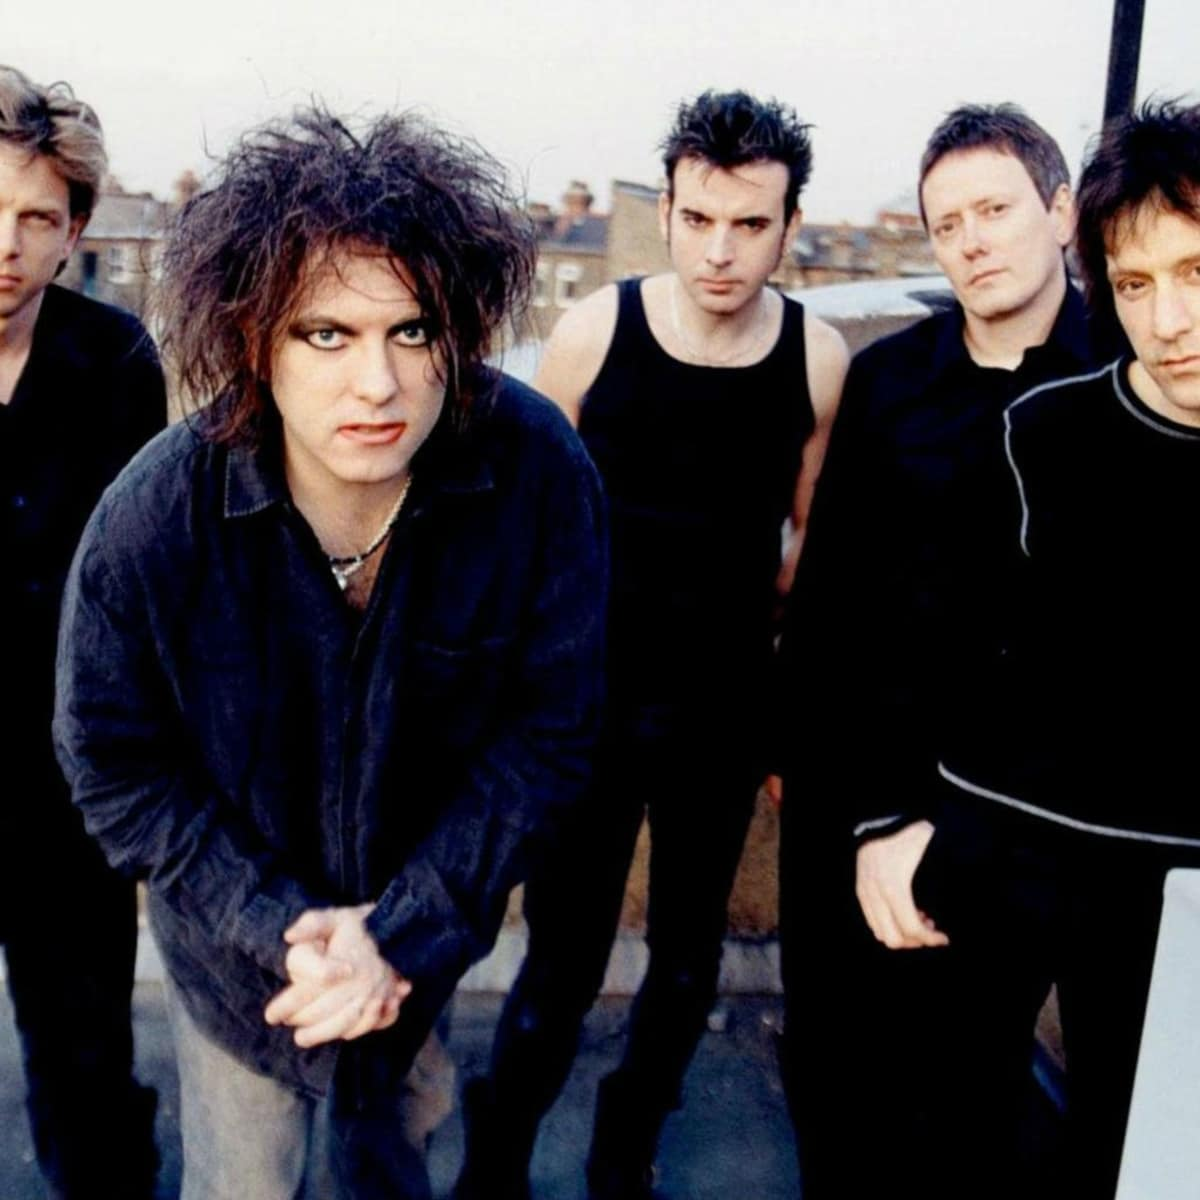 The Cure headlines ACL festival 2013